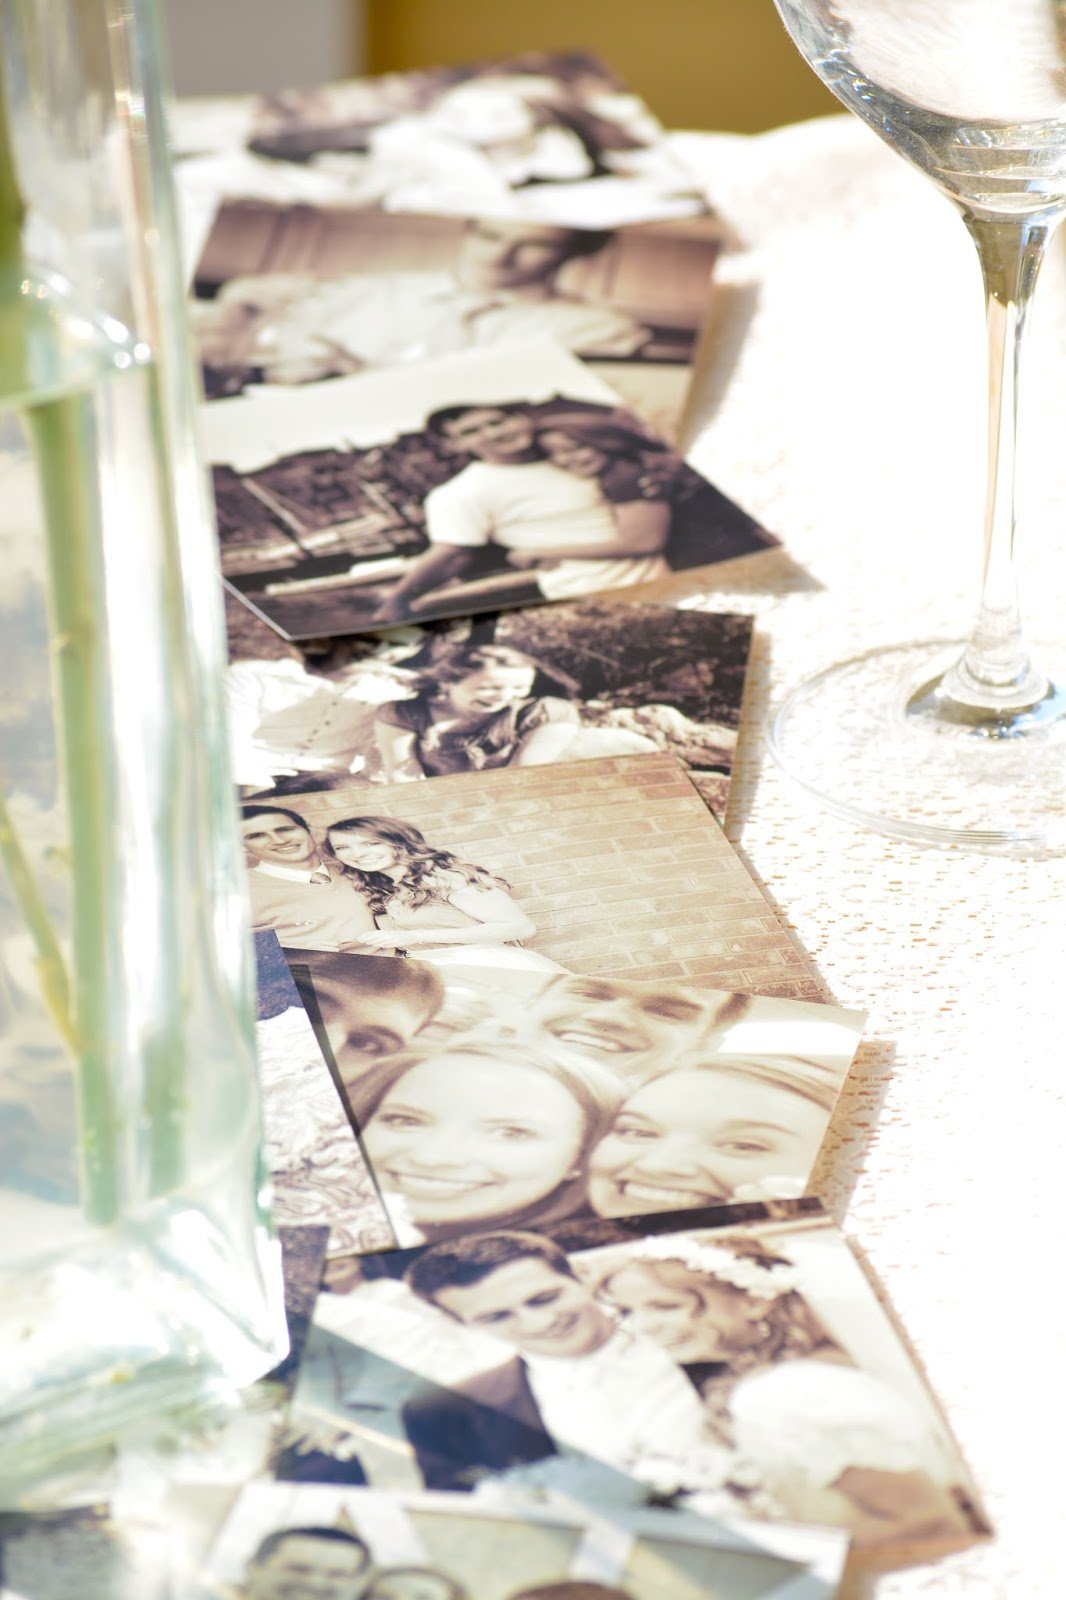 print instagram photos for photo table runner - Anniversary Dinner Decor [with printed instagram photos] by Boston lifestyle blogger Elisabeth McKnight